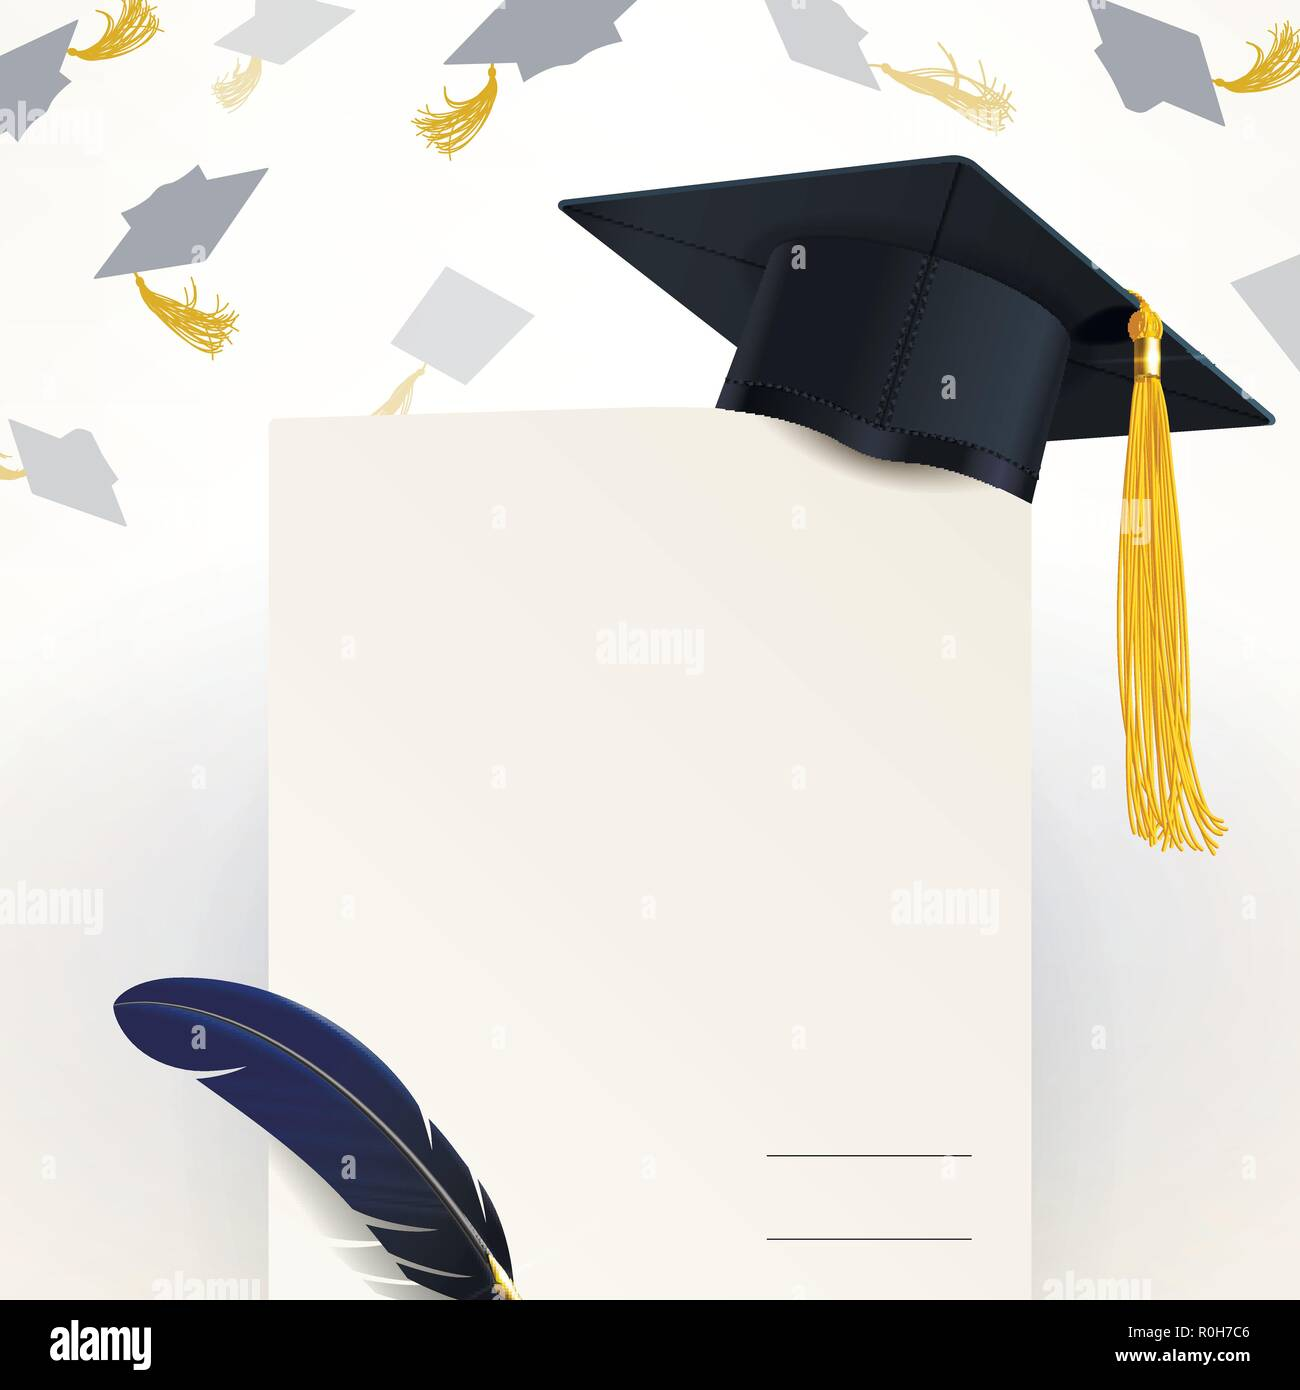 diploma of graduation and graduate cap on a light background - Stock Vector